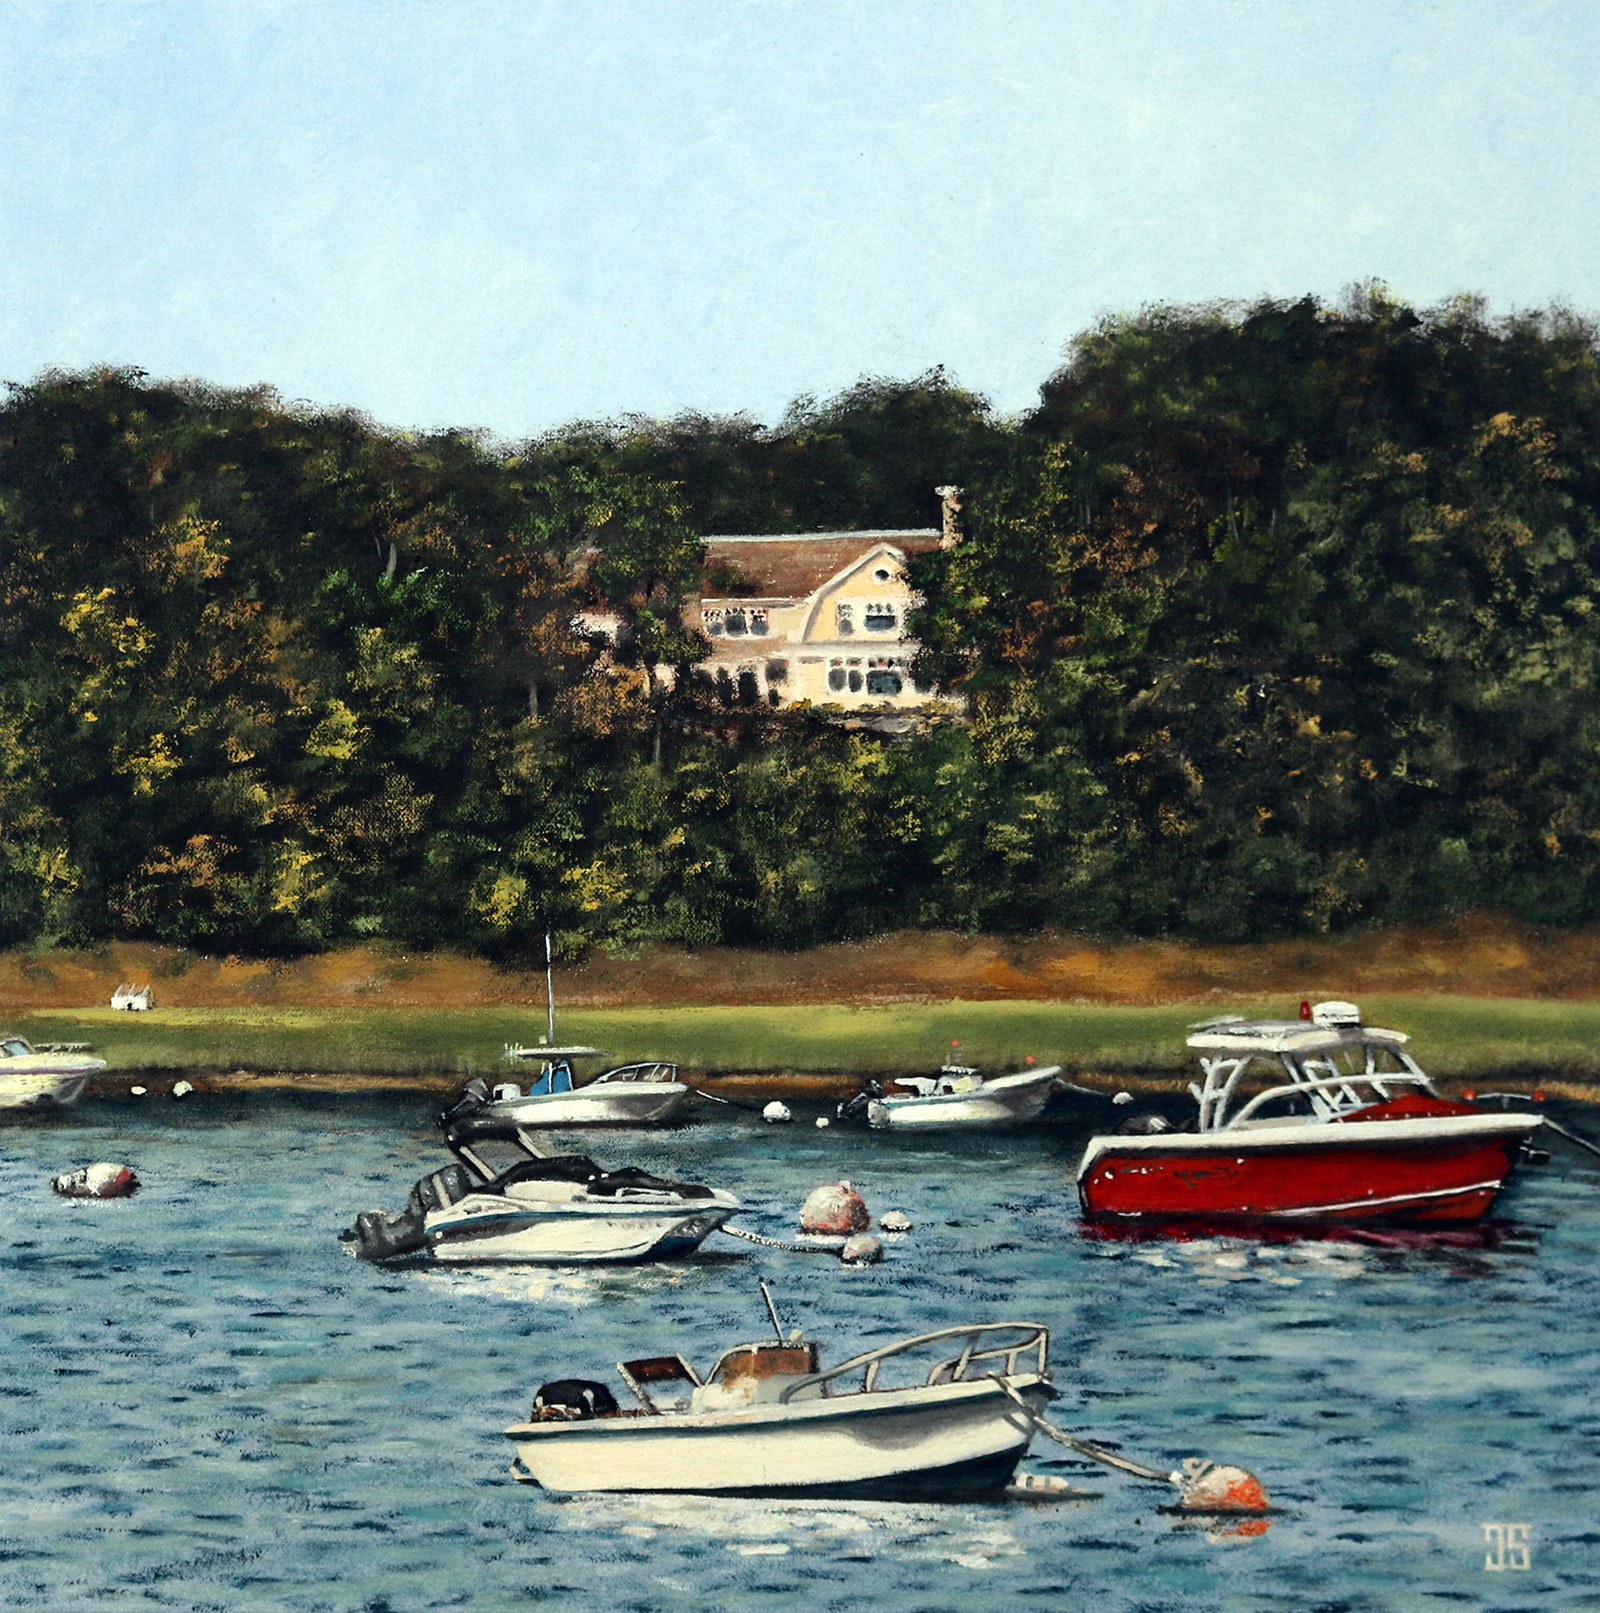 A Cove in Chatham by Jeffrey Dale Starr